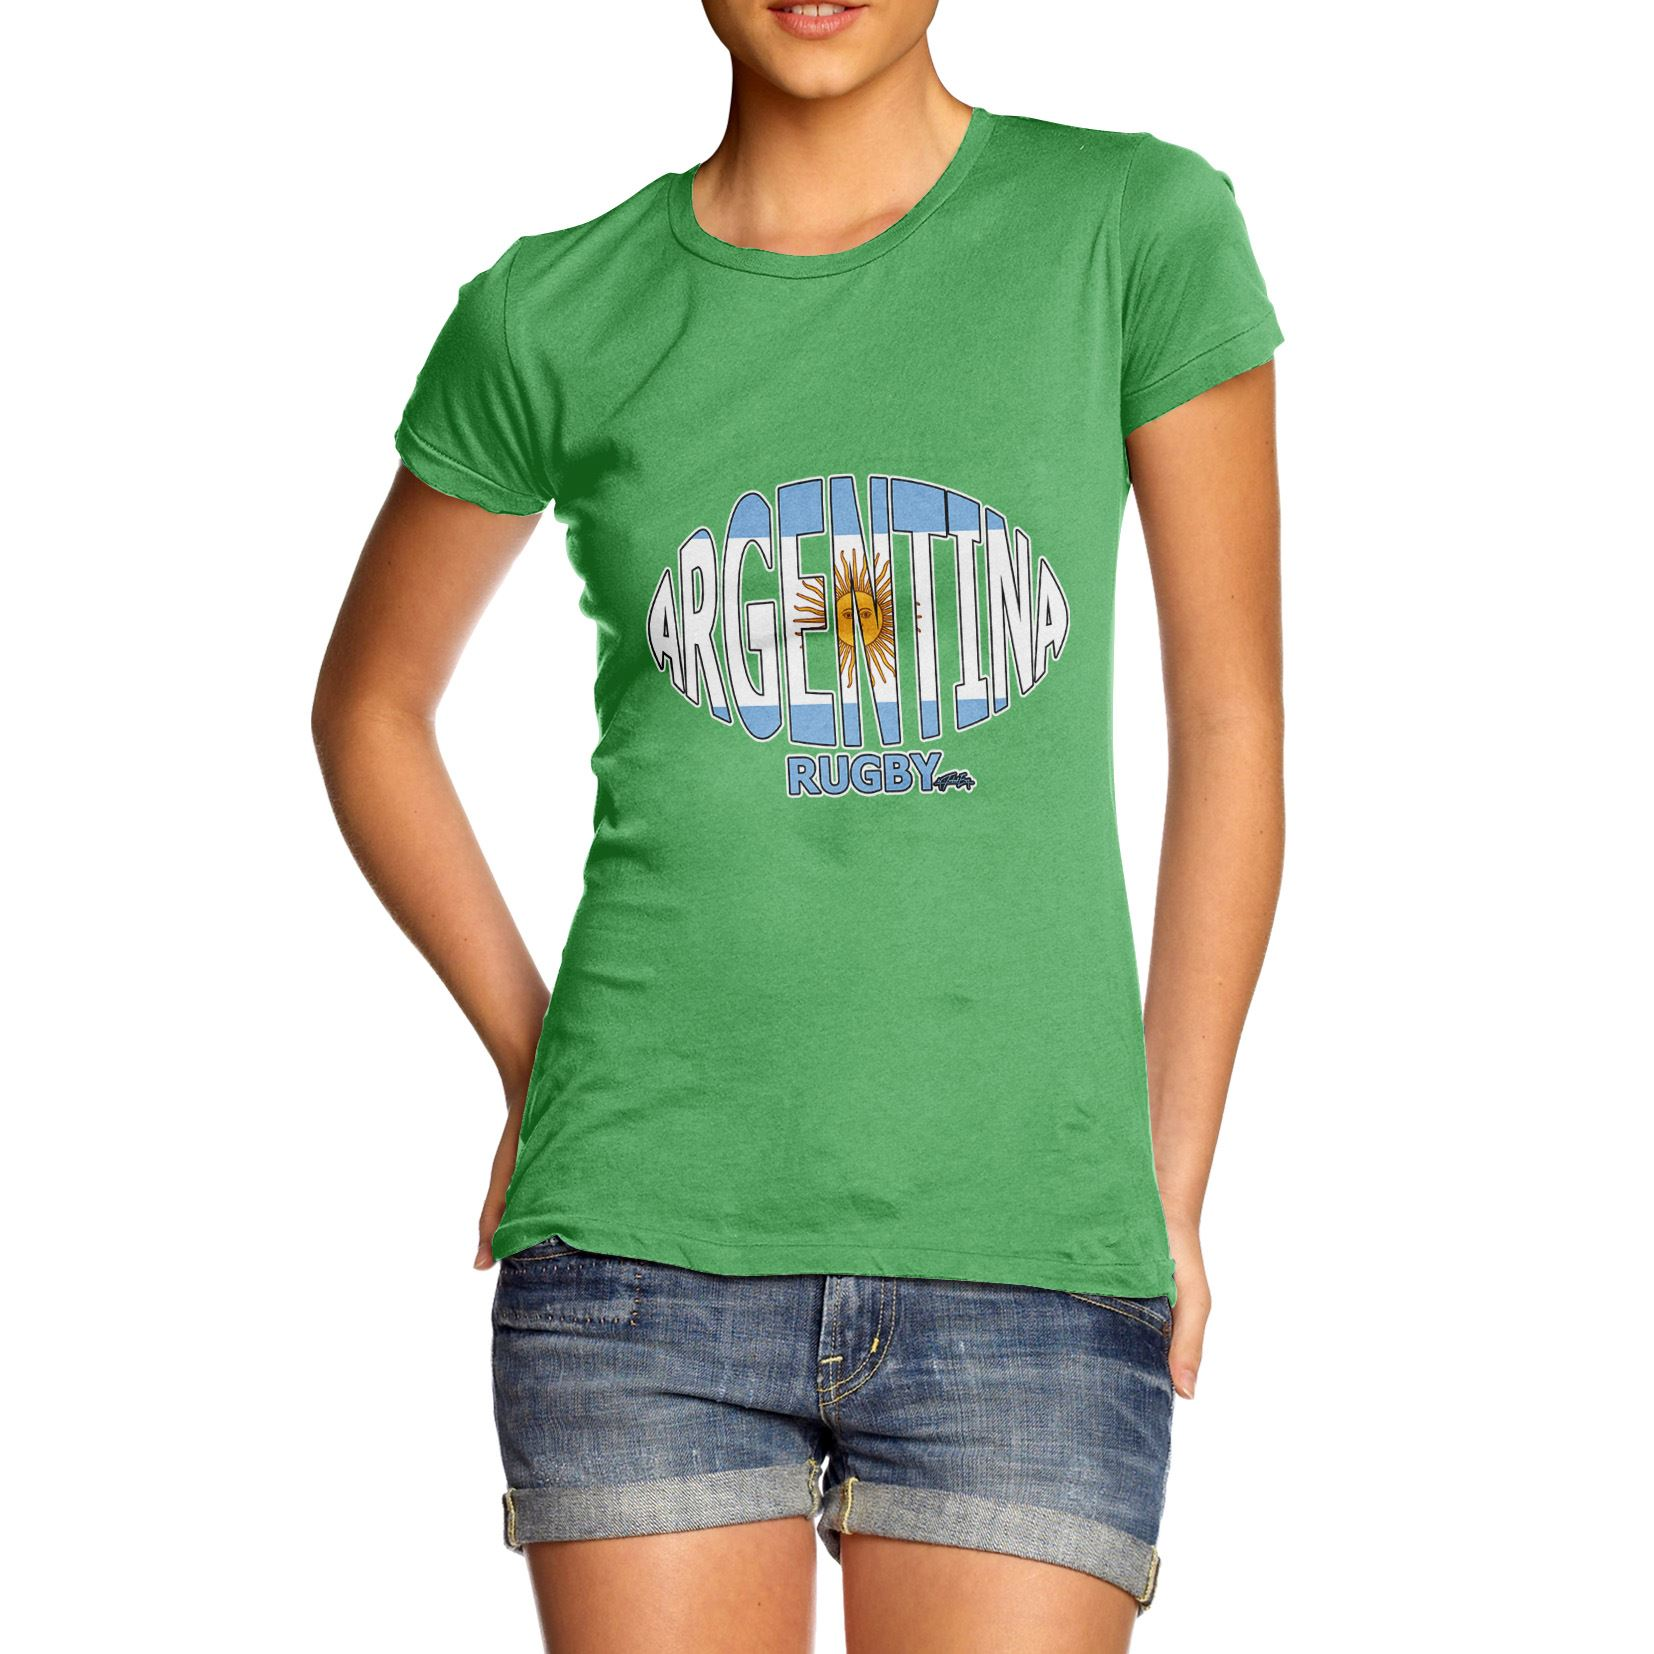 3dd493856 Cute St Patricks Day Shirt Ideas | Saddha